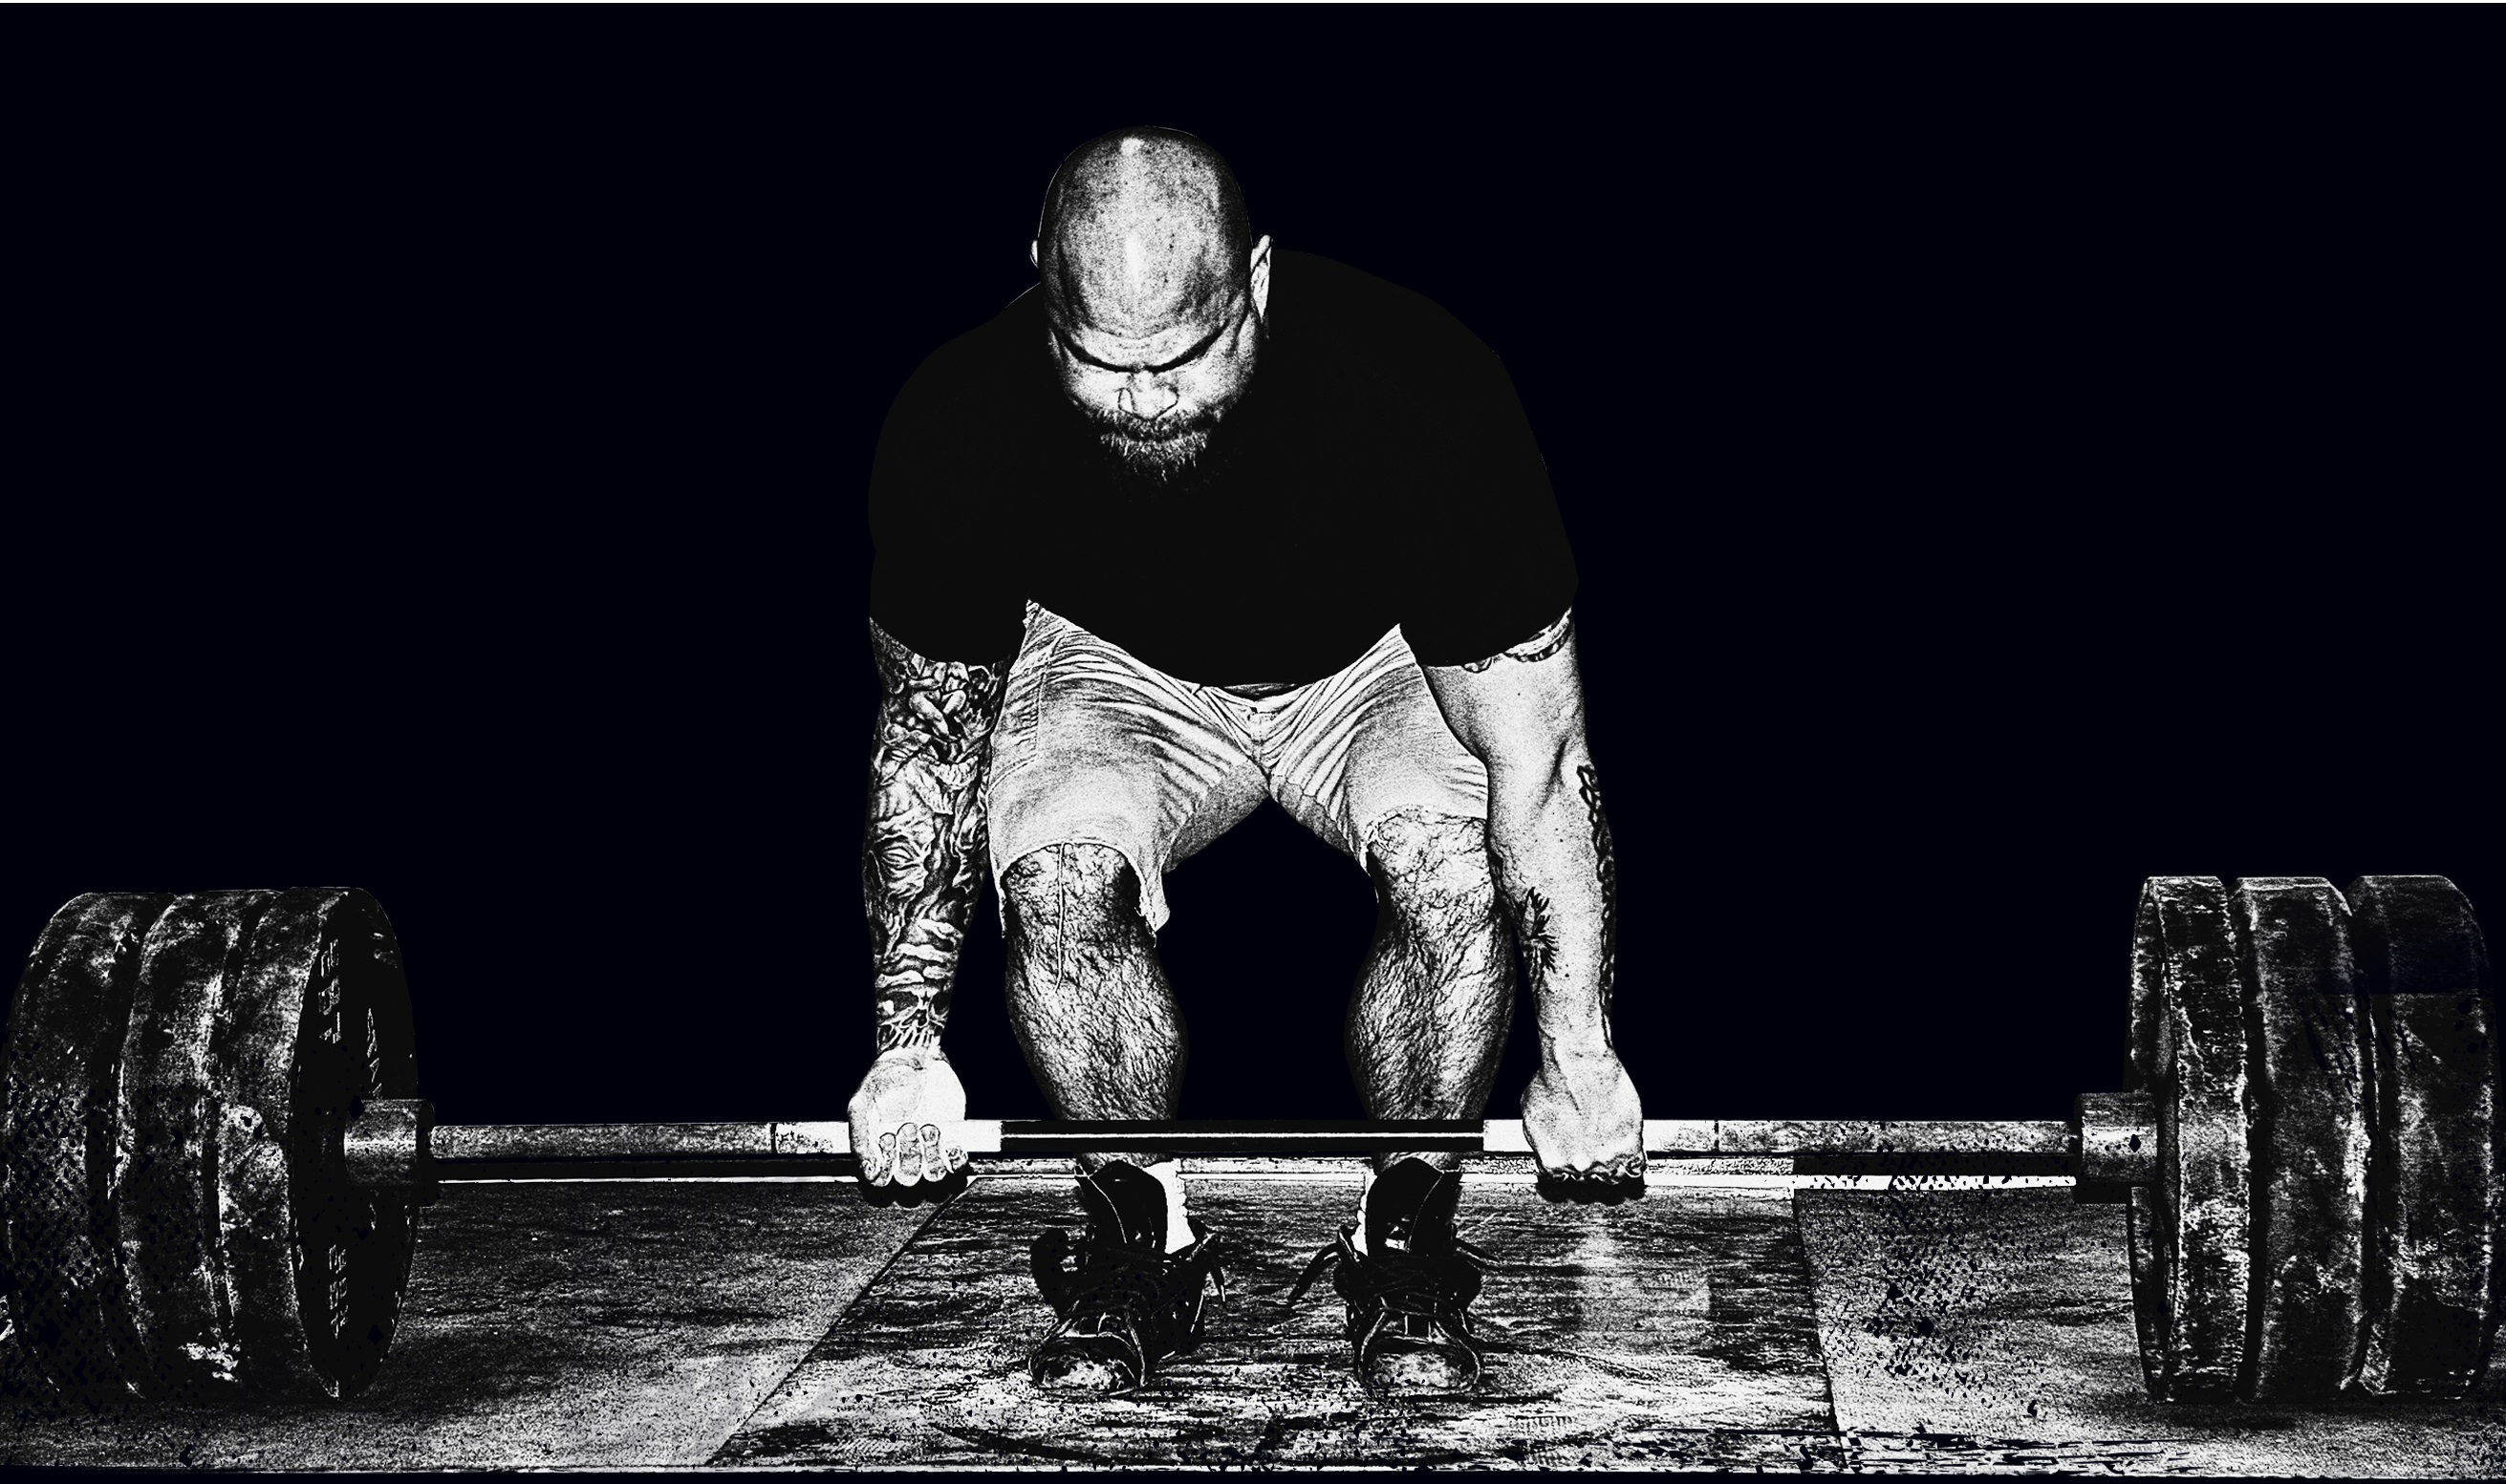 Get Strong Fast With the 5/3/1 Strength Training Program